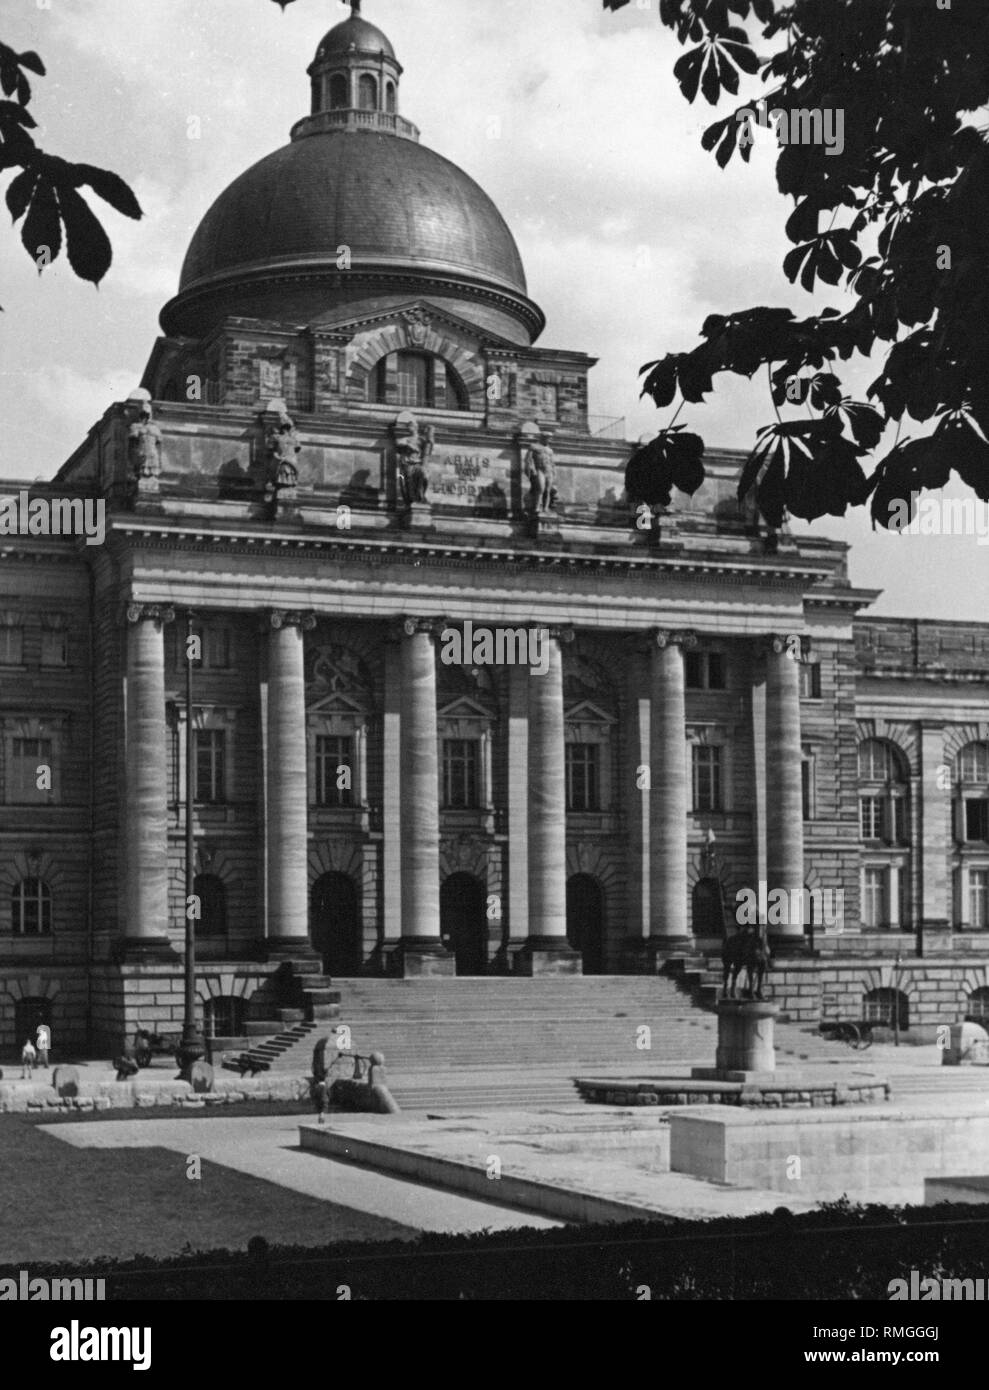 Historical photograph of the Bavarian Army Museum in Hofgarten in Munich before its destruction. Nowadays the Bavarian State Chancellery is located here. - Stock Image